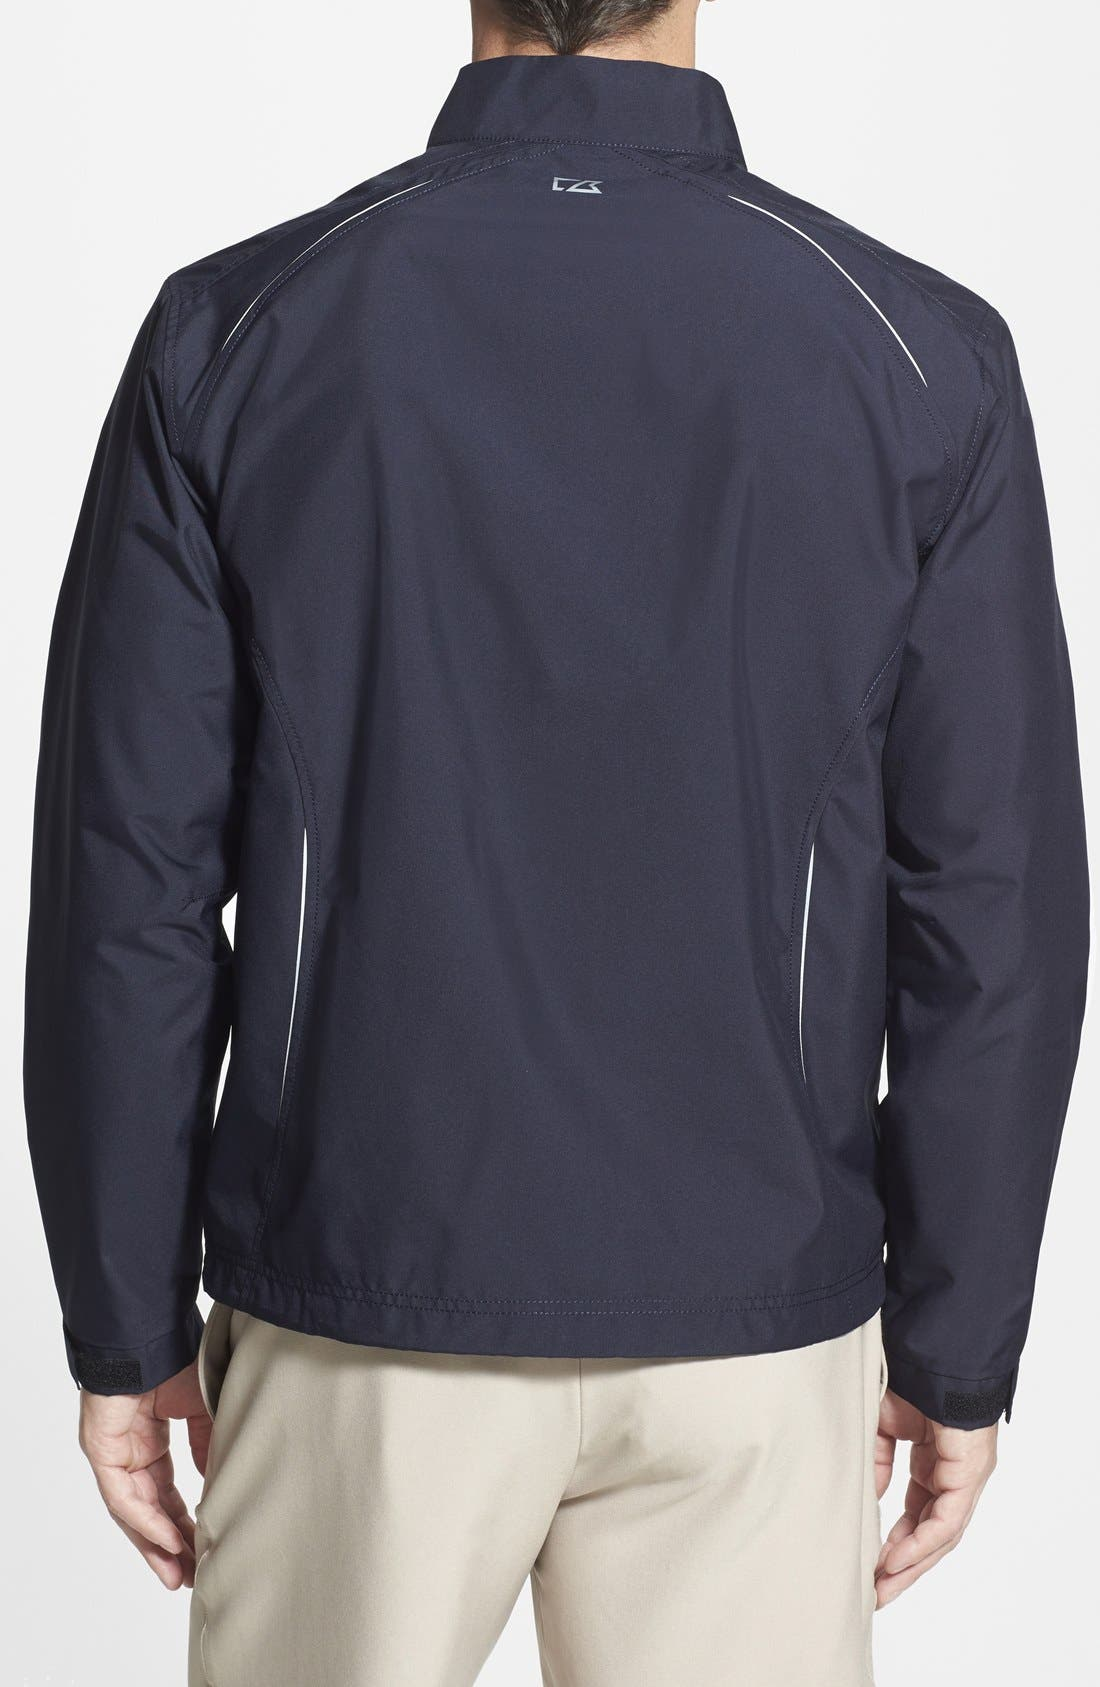 Los Angeles - Beacon WeatherTec Wind & Water Resistant Jacket,                             Alternate thumbnail 2, color,                             Navy Blue